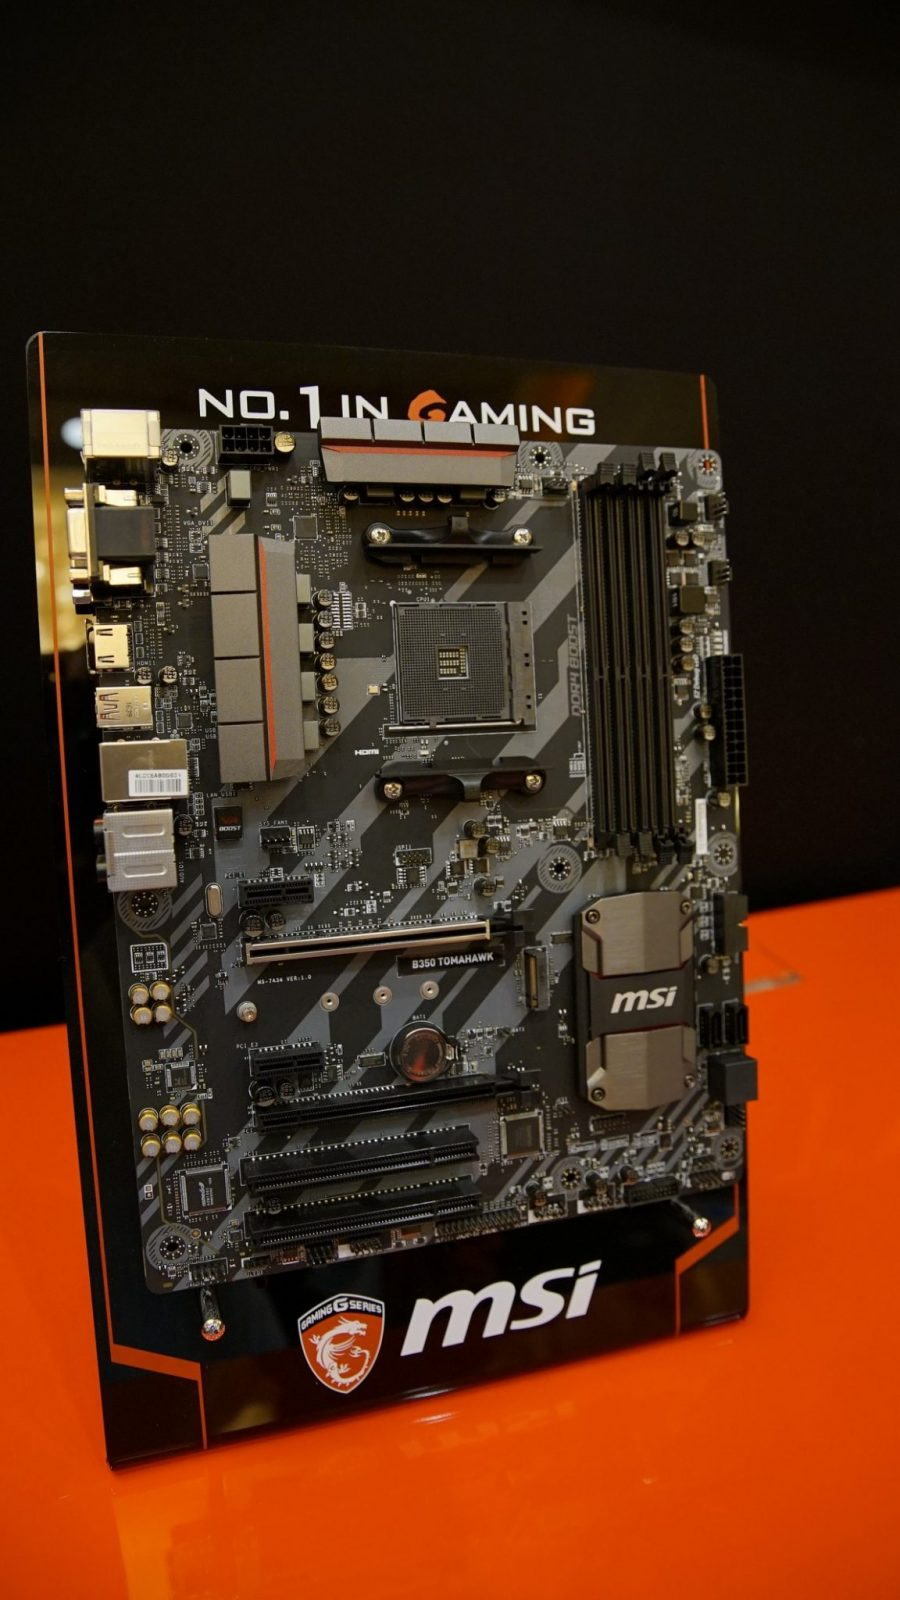 The second board is a lower end MSI s B350 series Tomahawk motherboard for bud oriented AM4 motherboard Still it es with features like M 2 support